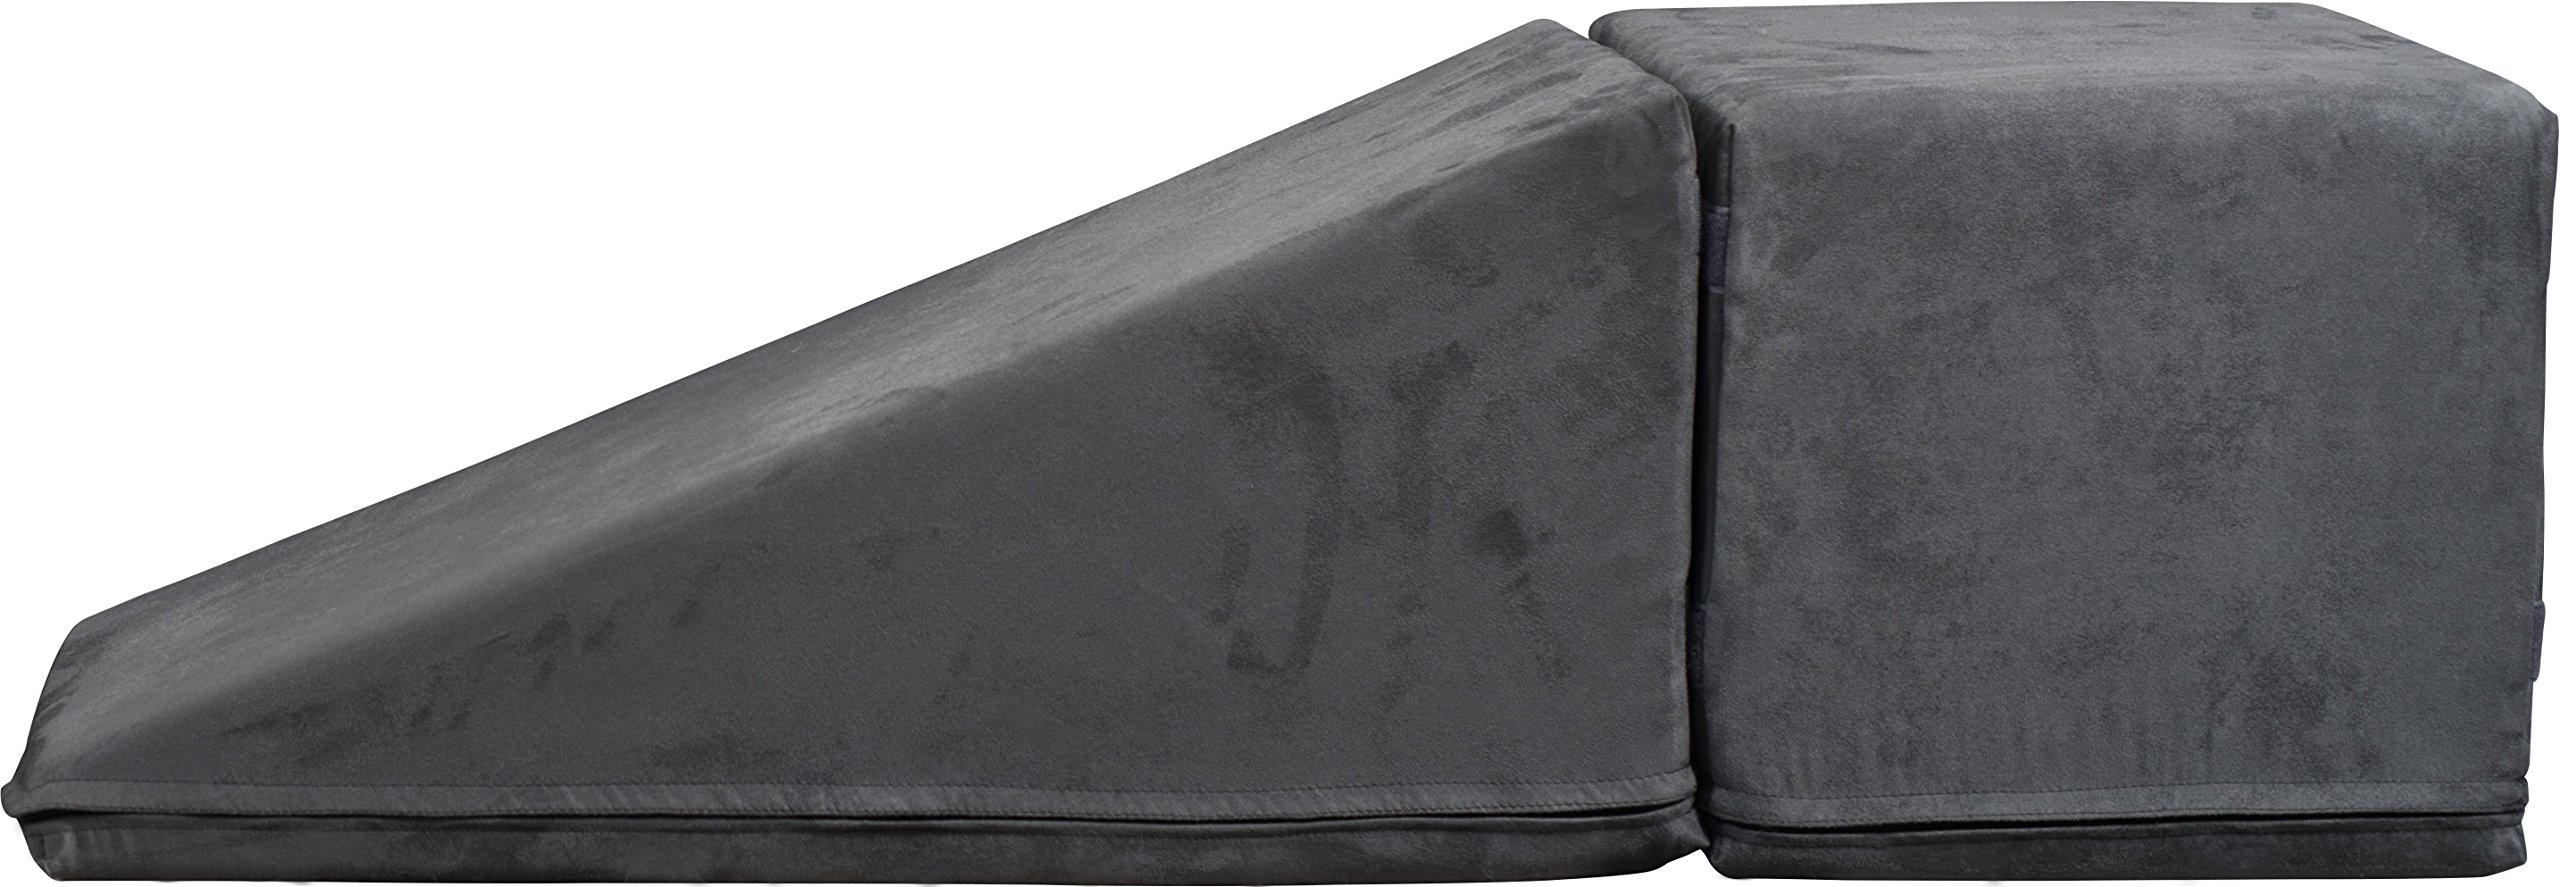 Royal Ramps 14'' Pet Ramp with Landing - Charcoal Gray